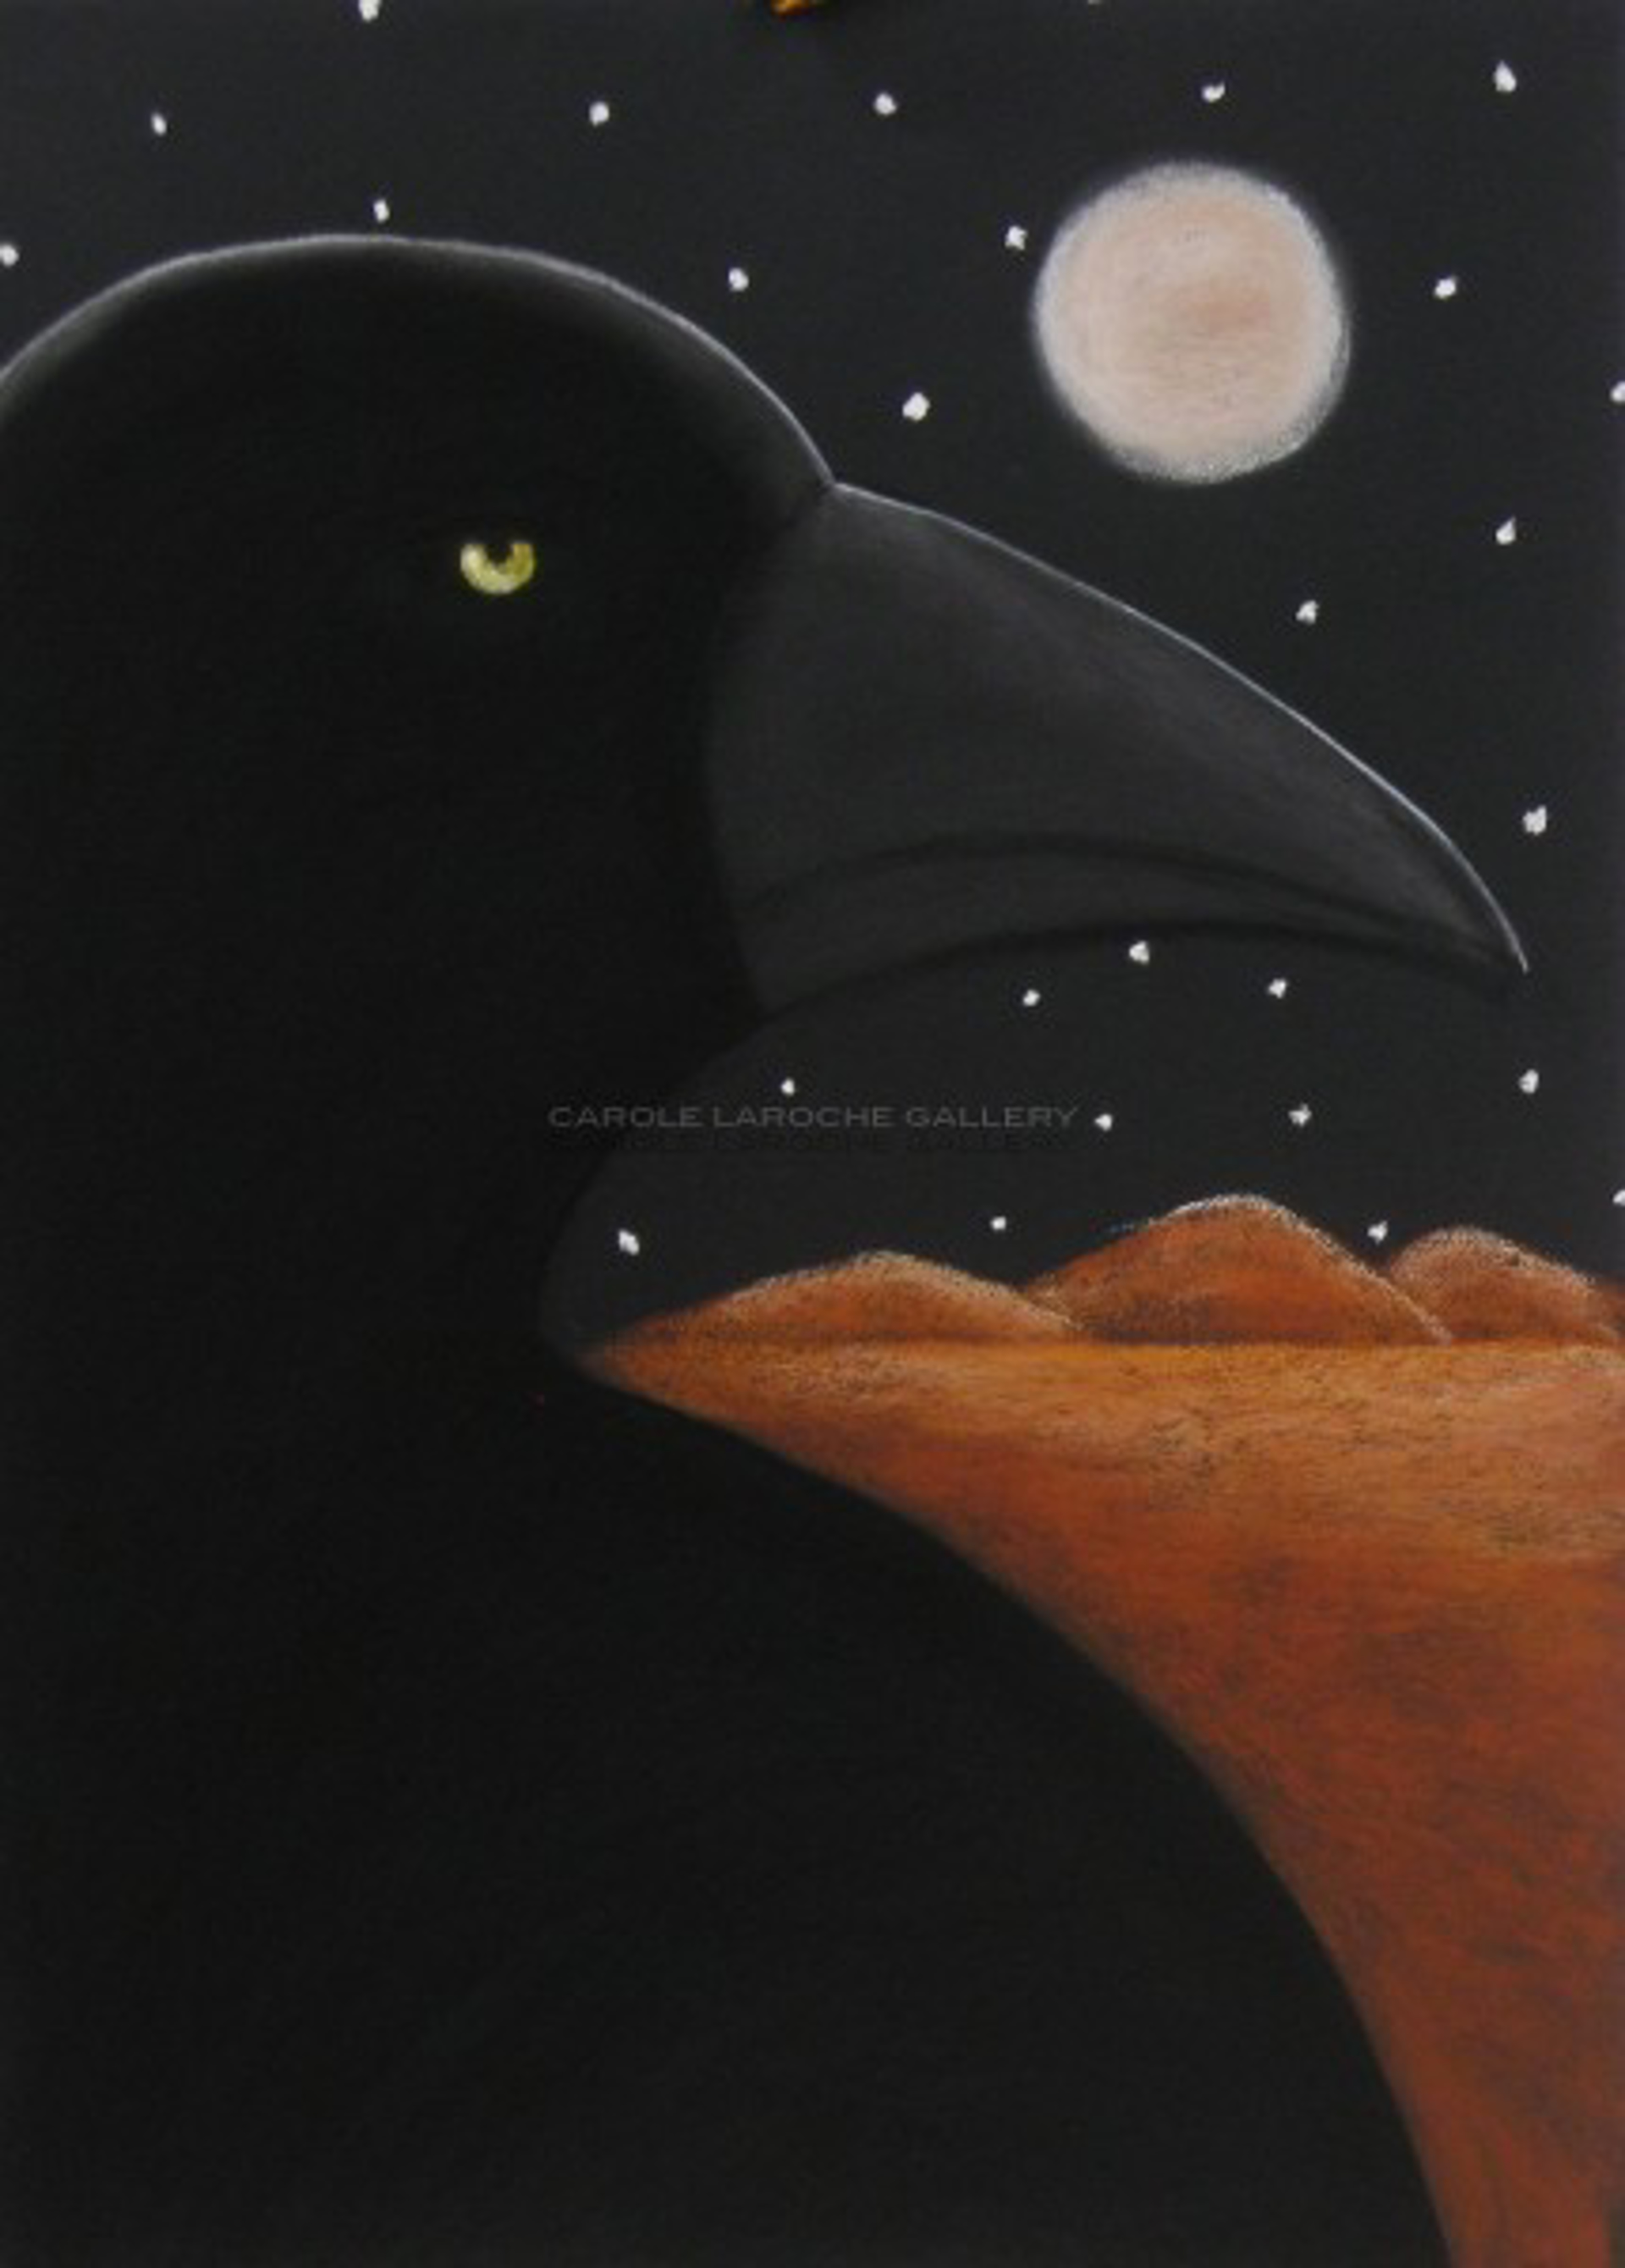 """MIDNIGHT RAVEN - limited edition giclee on paper w/frame size of 40""""x32"""" or limited edition giclee on canvas 38""""x28""""  $2200 by Carole LaRoche"""